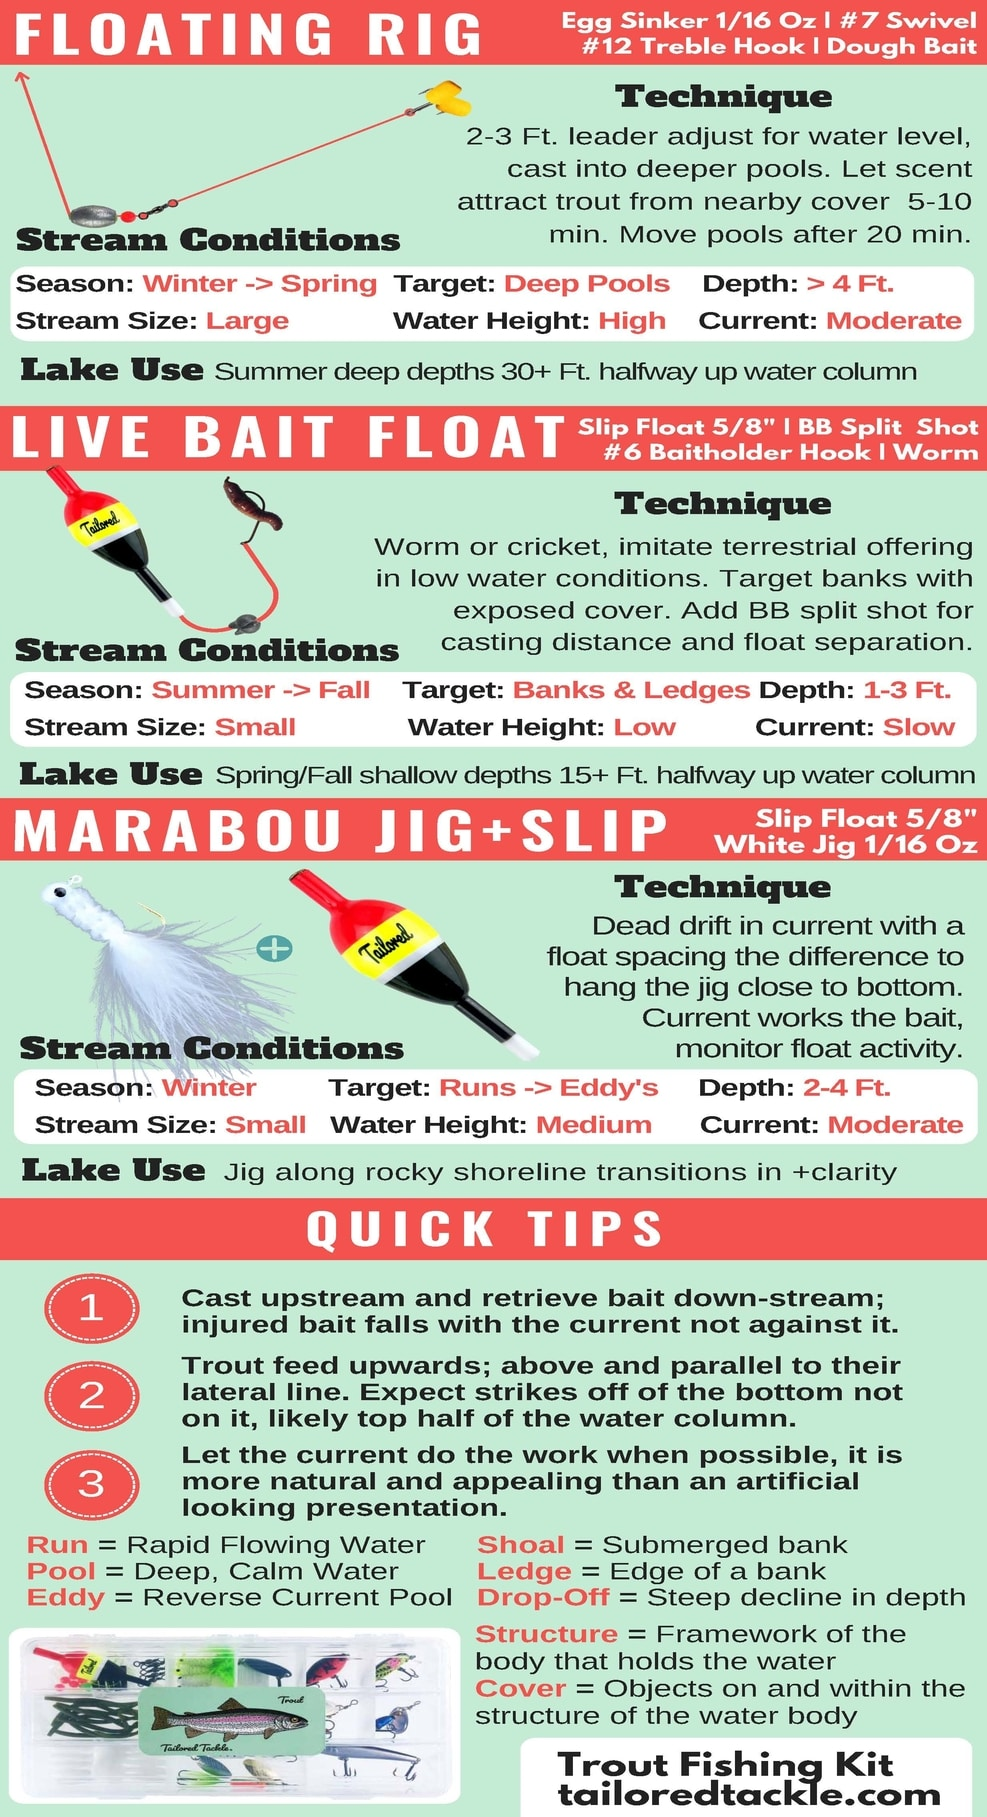 Rainbow Trout Fishing Rigs Bottom Rig Slip Bobber Live Bait Tailored Tackle